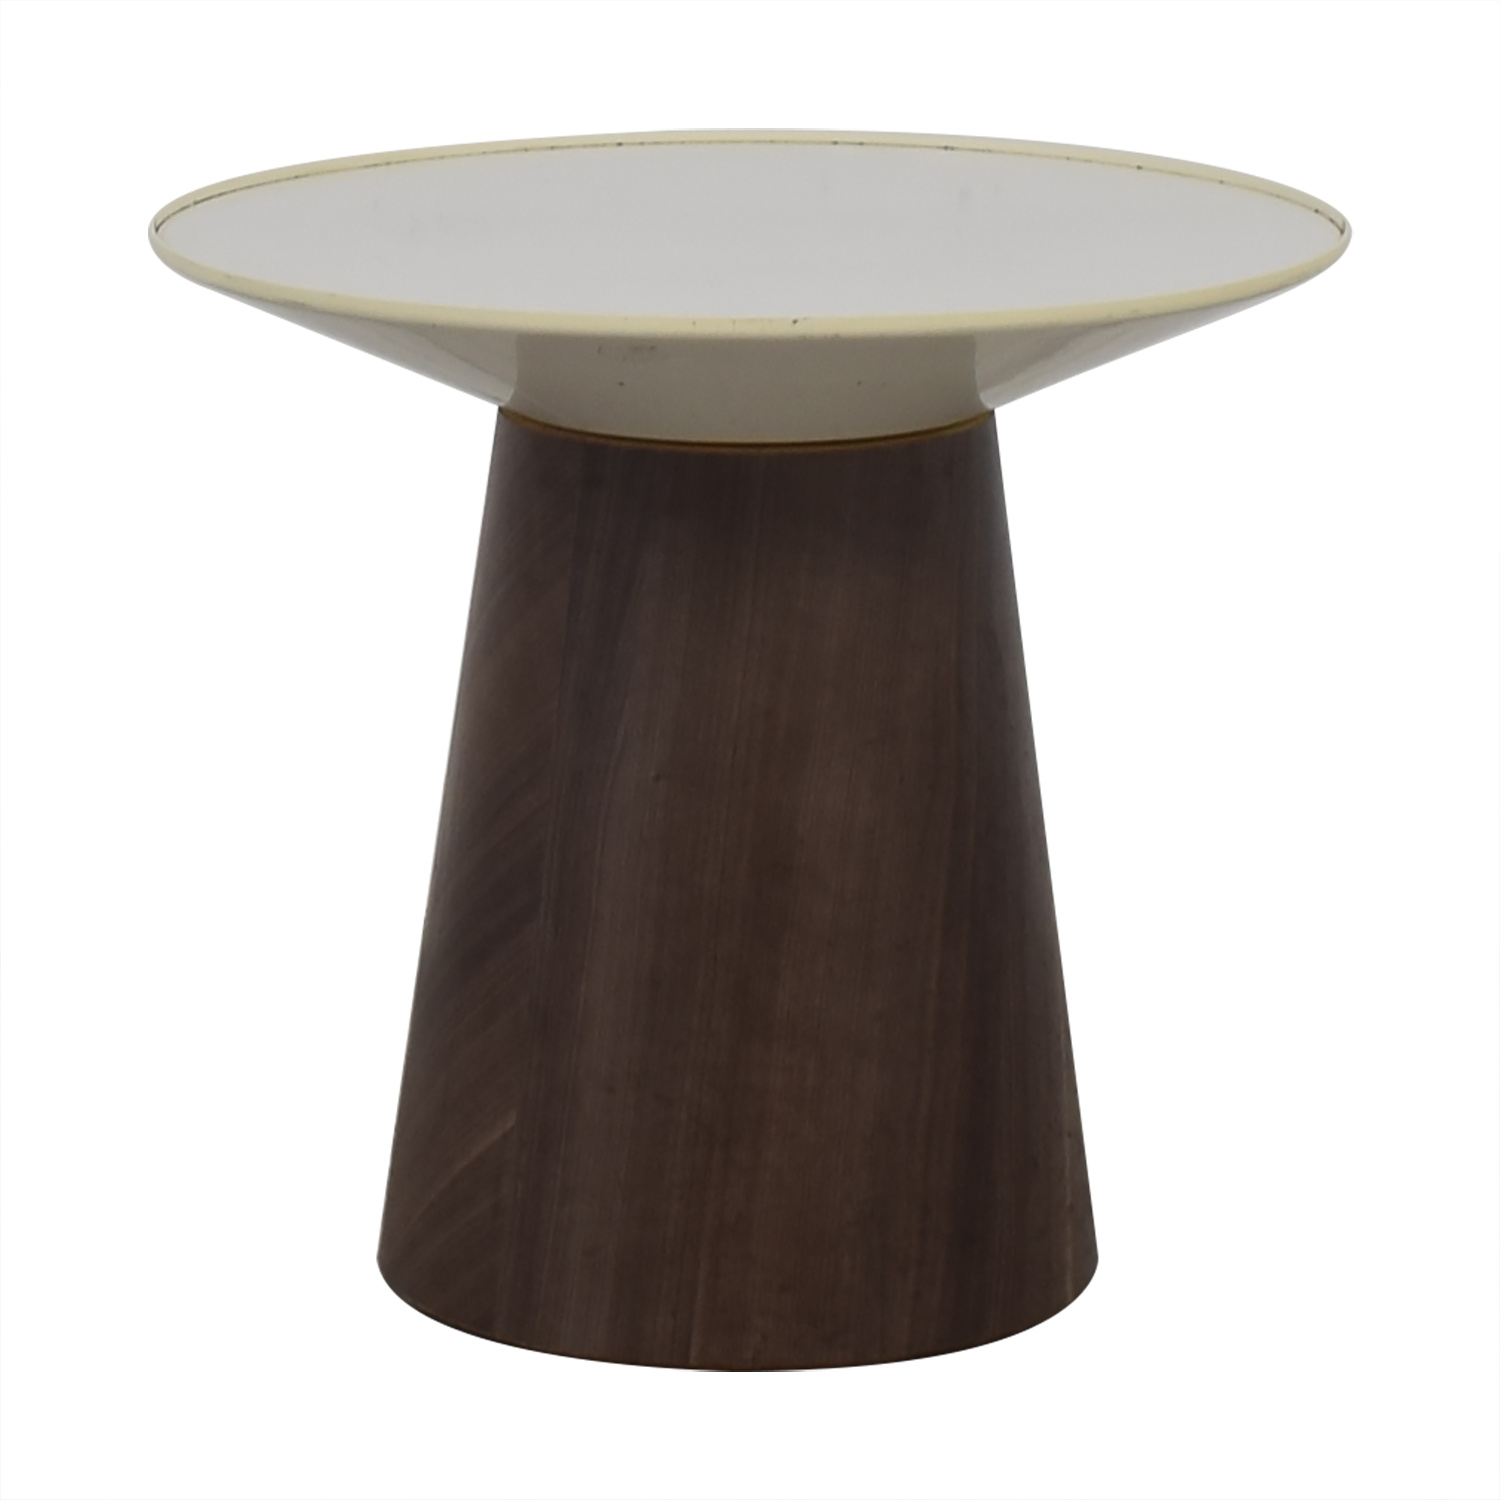 Steelcase Turnstone Steelcase Turnstone Campfire Round Paper Table second hand